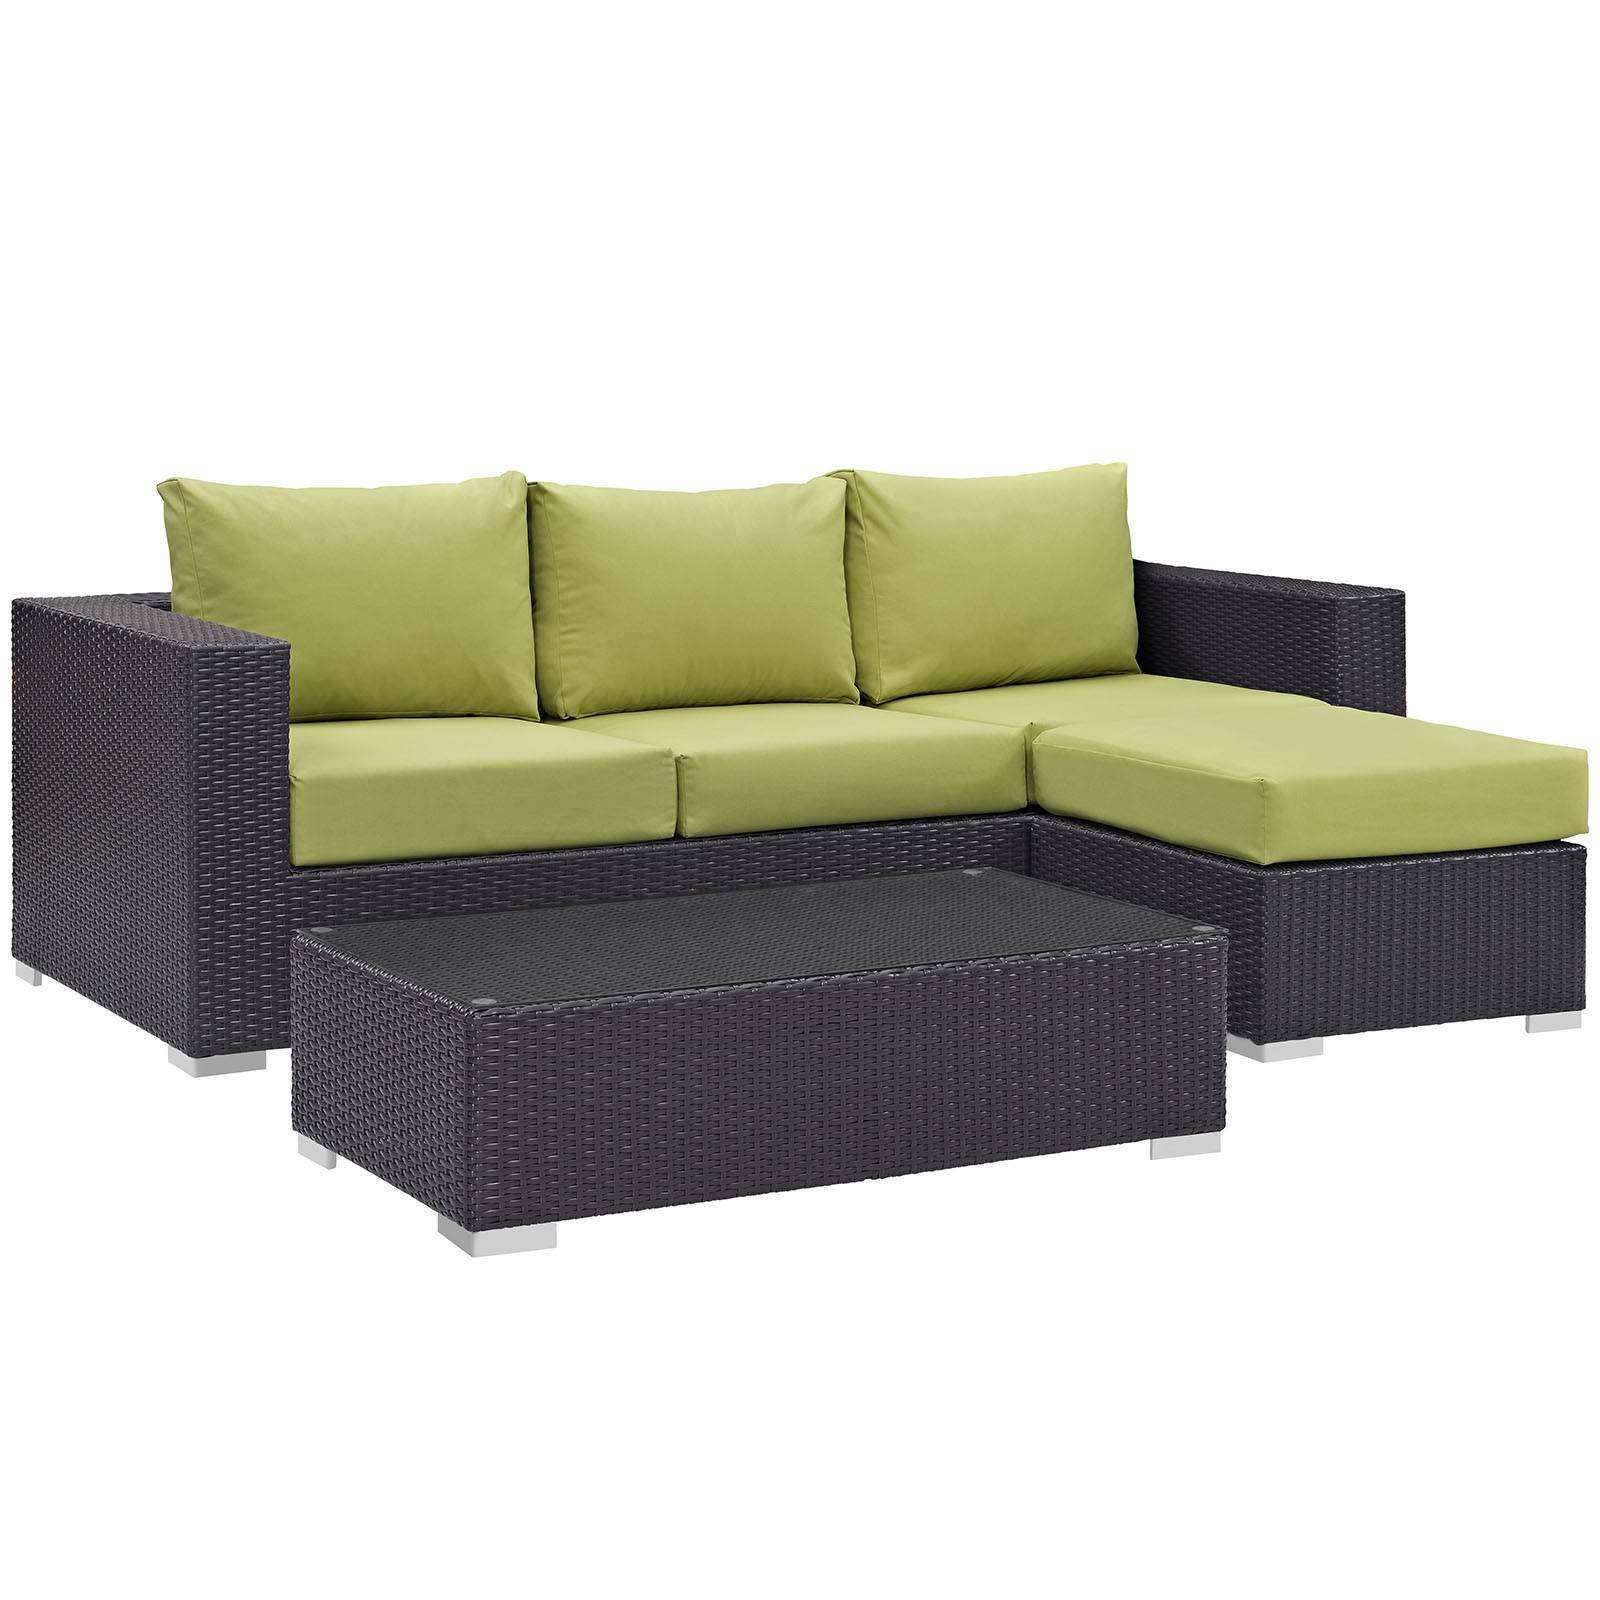 itm sofa s patio pe ebay aluminum furniture wicker outdoor brown set sectional rattan frame